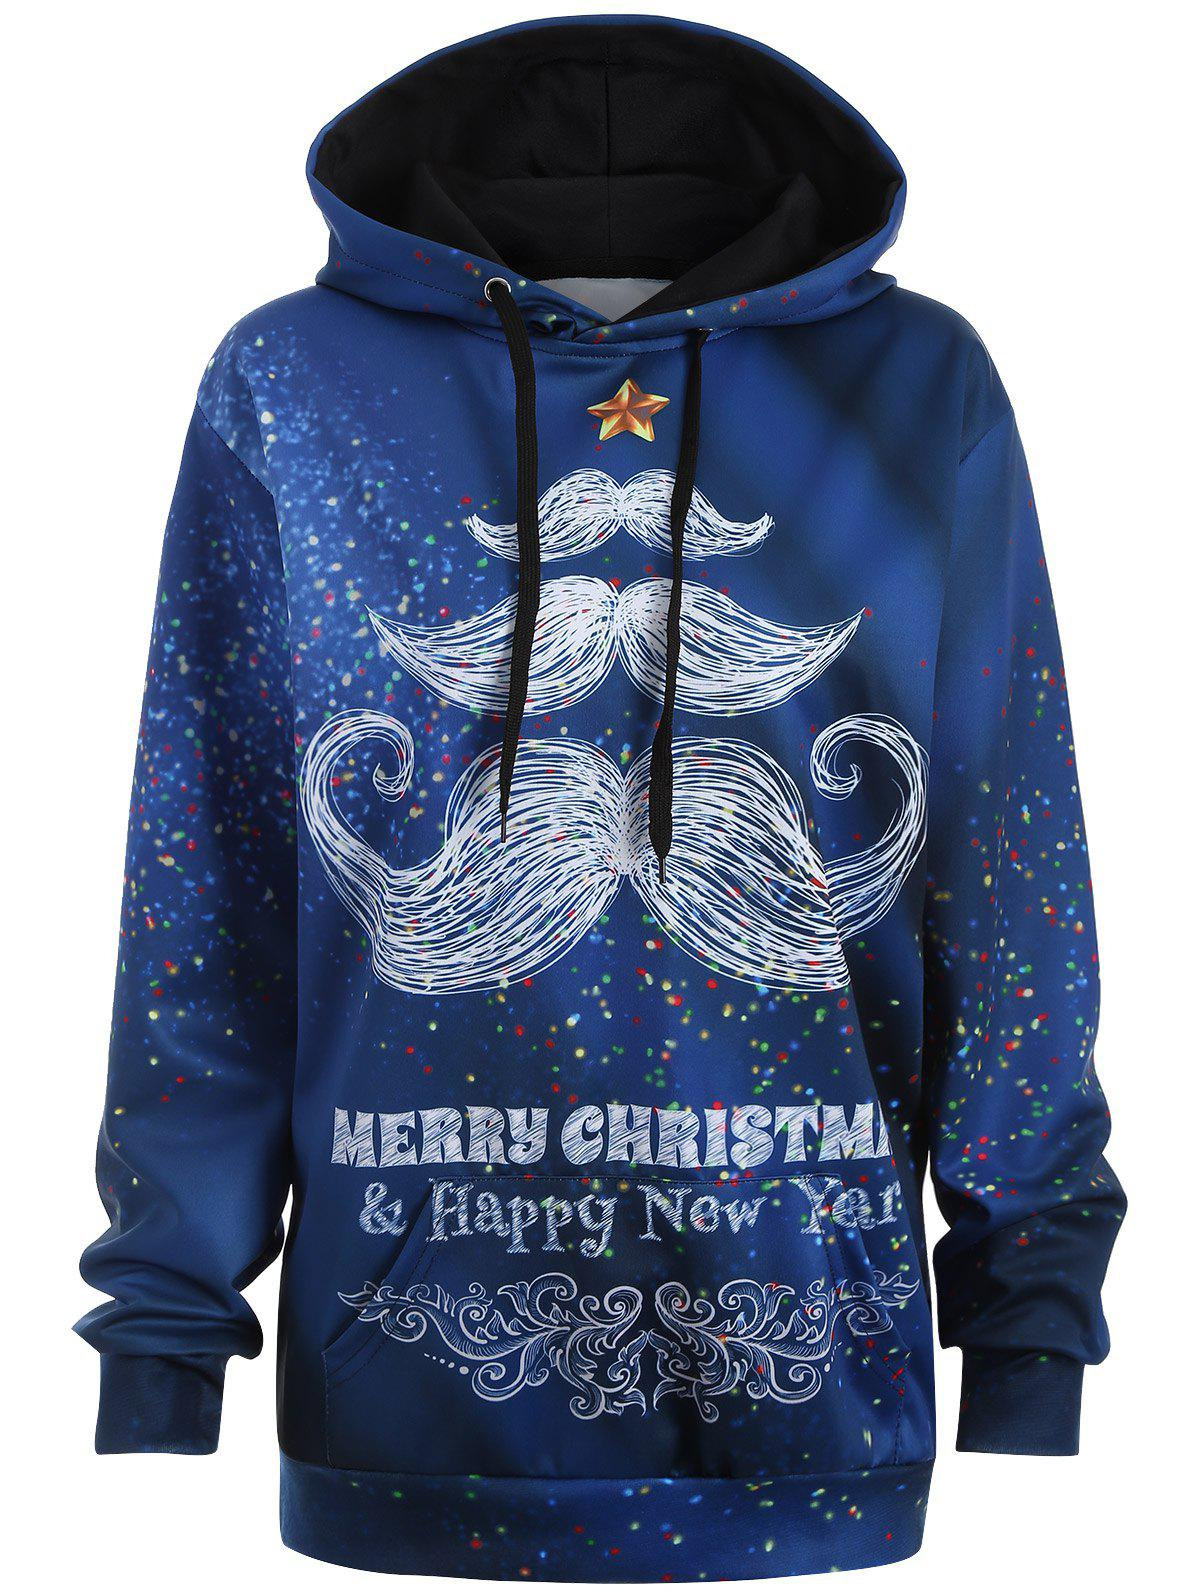 Plus Size Merry Christmas Mustache HoodieWOMEN<br><br>Size: 2XL; Color: BLUE; Material: Polyester; Shirt Length: Long; Sleeve Length: Full; Style: Casual; Pattern Style: Letter; Season: Fall,Spring; Weight: 0.445kg; Package Contents: 1 x Hoodie;